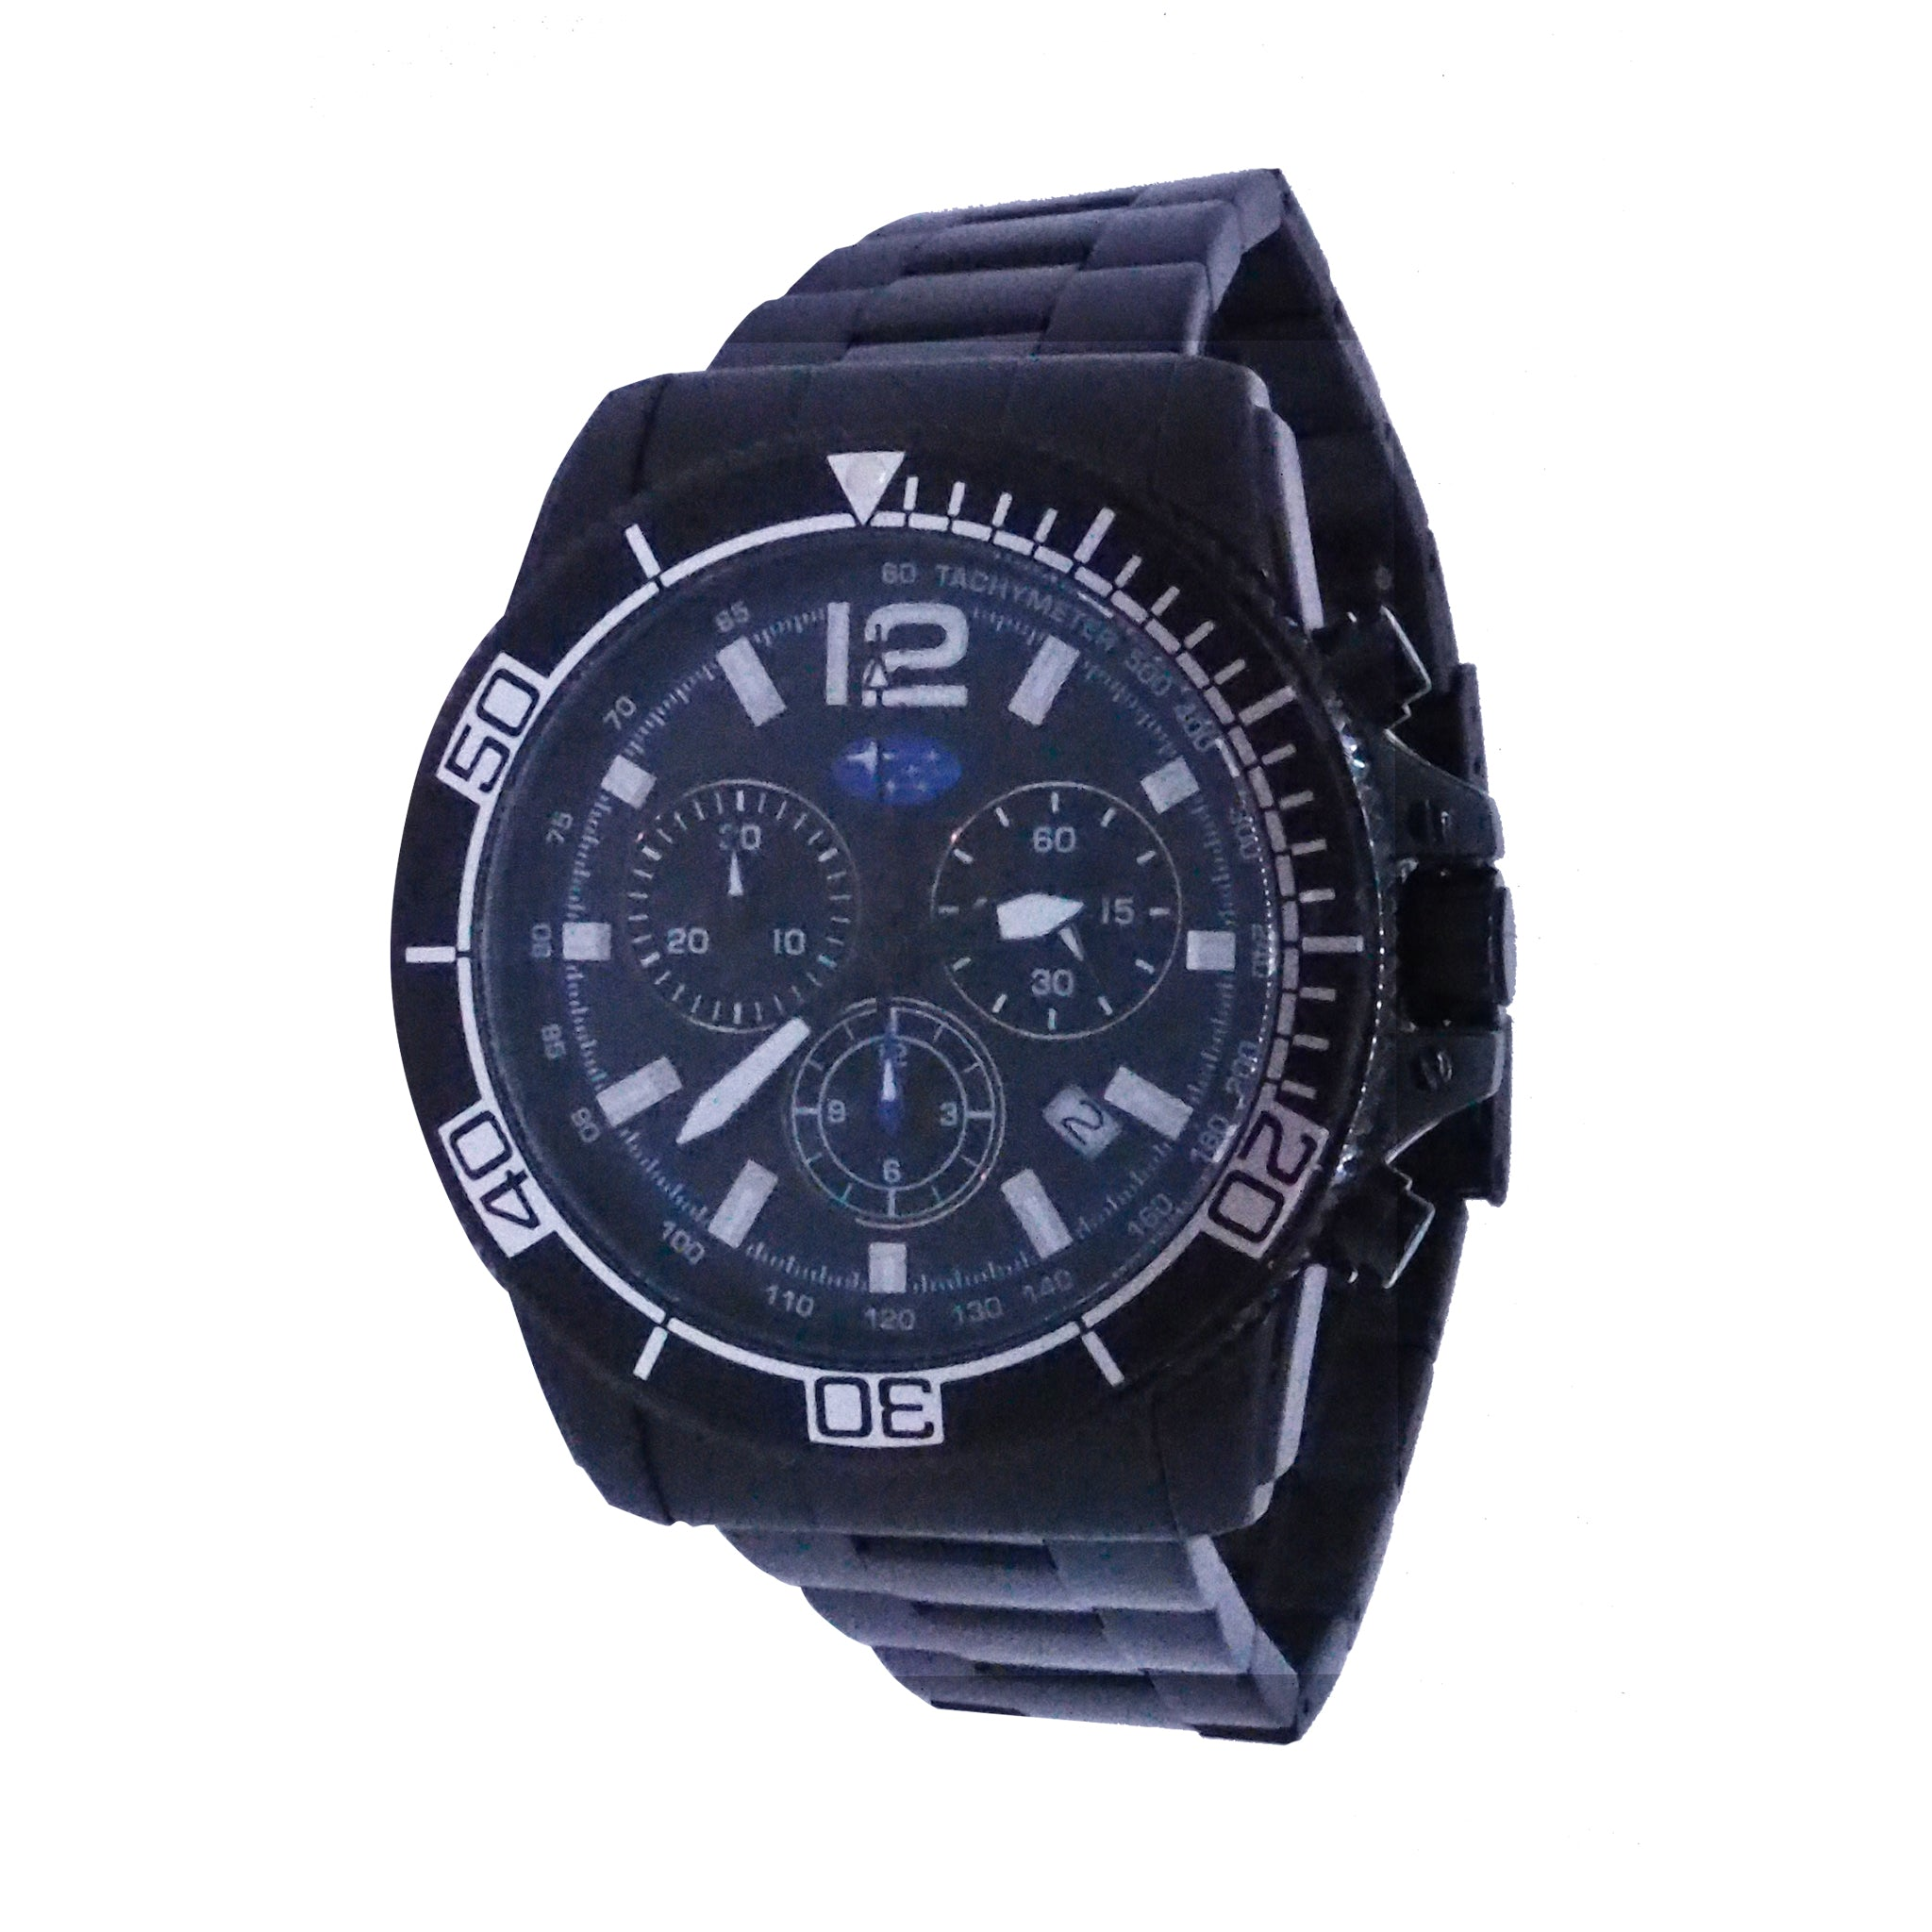 Subaru Motorsports Platting Wrapped Edge Chronograph Watch